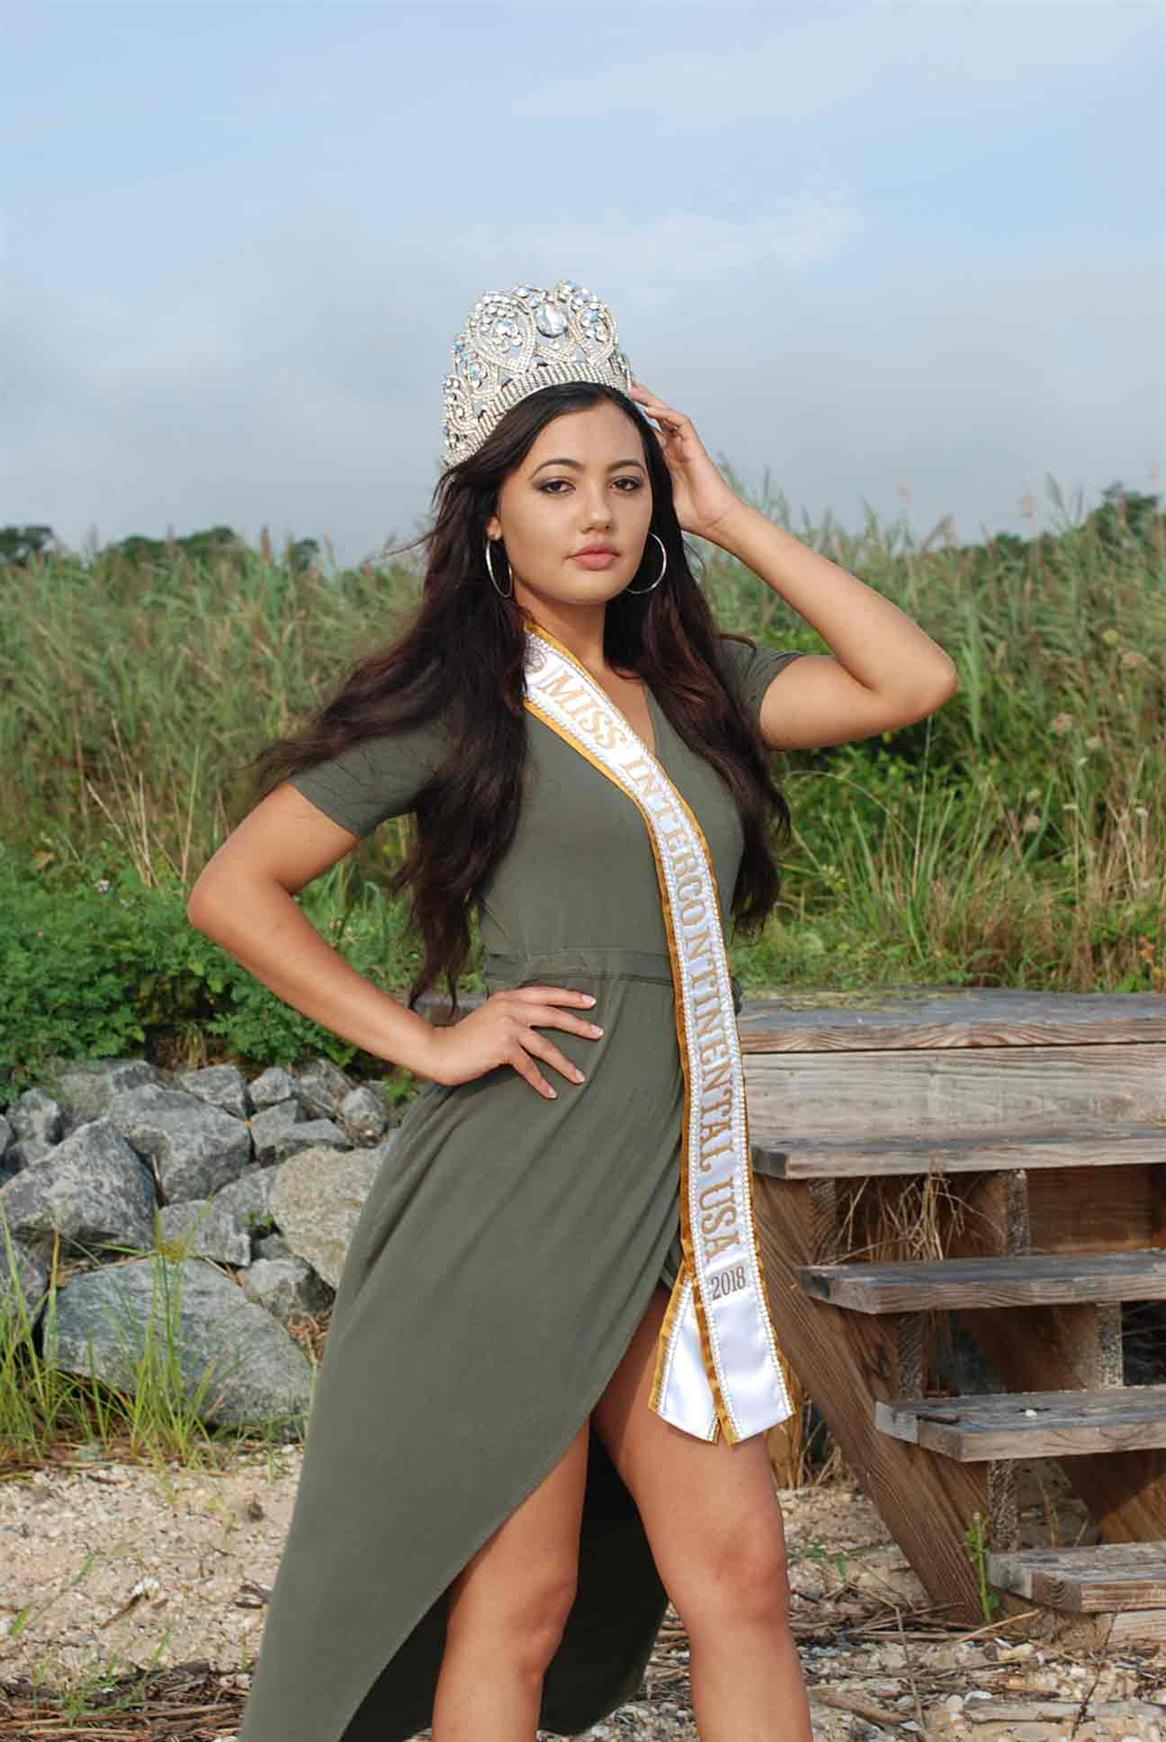 Beauty Talks with Miss Intercontinental USA 2018 Syanne Centeno